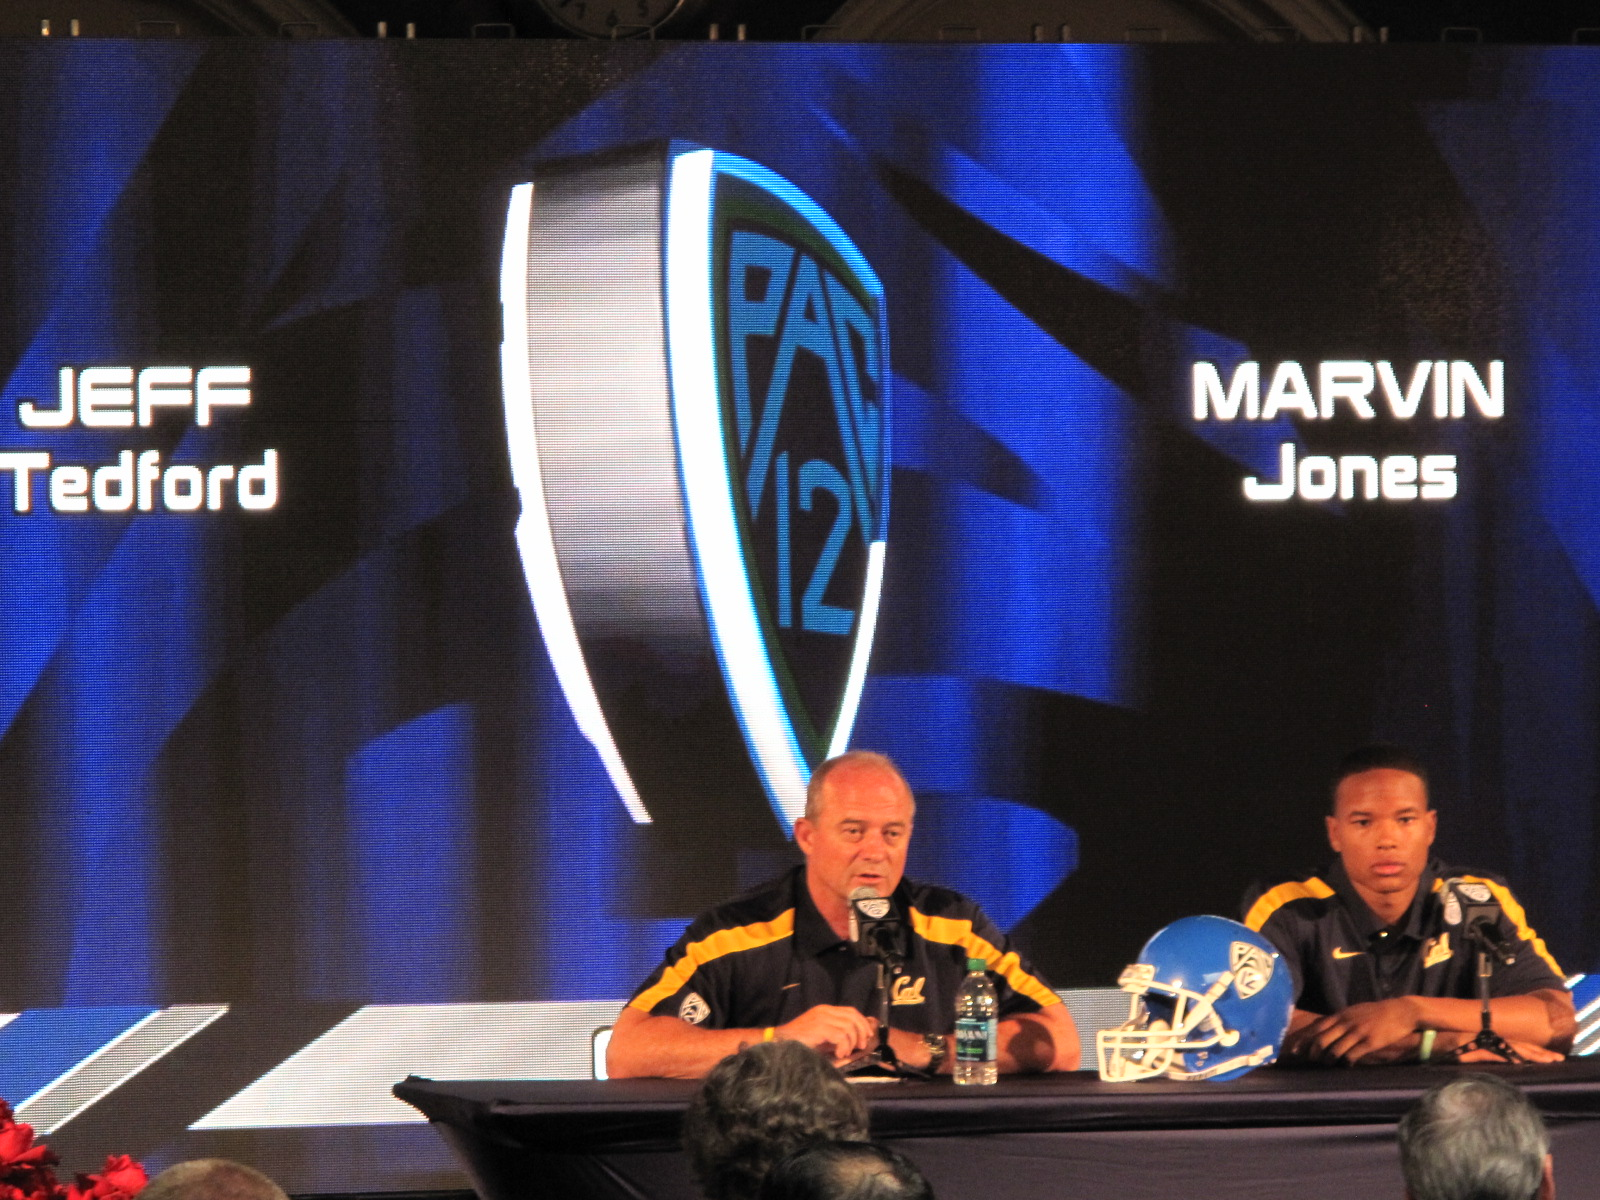 Head coach Jeff Tedford and receiver Marvin Jones fielded questions during Tuesday's Pac-12 Media day.